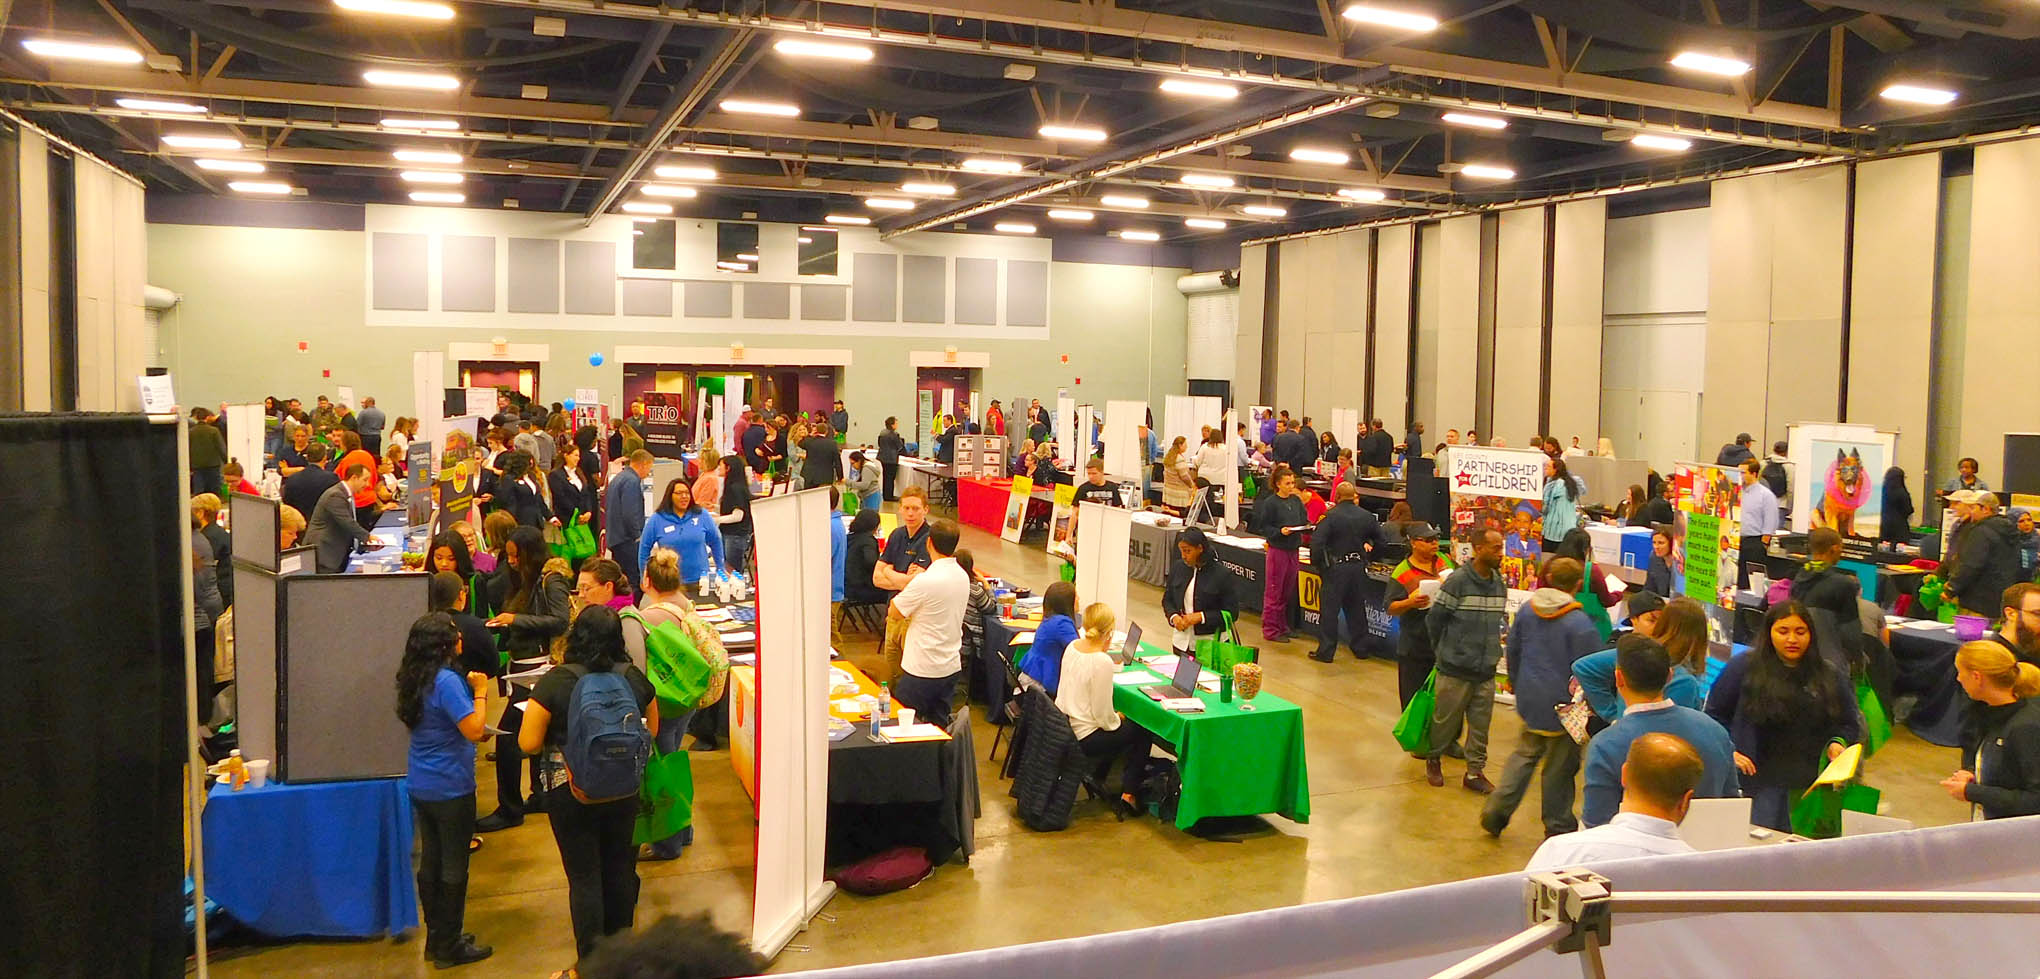 Click to enlarge,  Approximately 100 exhibitors were present for the Central Carolina Community College Annual Career Fair 2018. For more information on the CCCC Career Center, people can contact the Career Center at 919-718-7396 or visit the CCCC website at www.cccc.edu/careercenter.